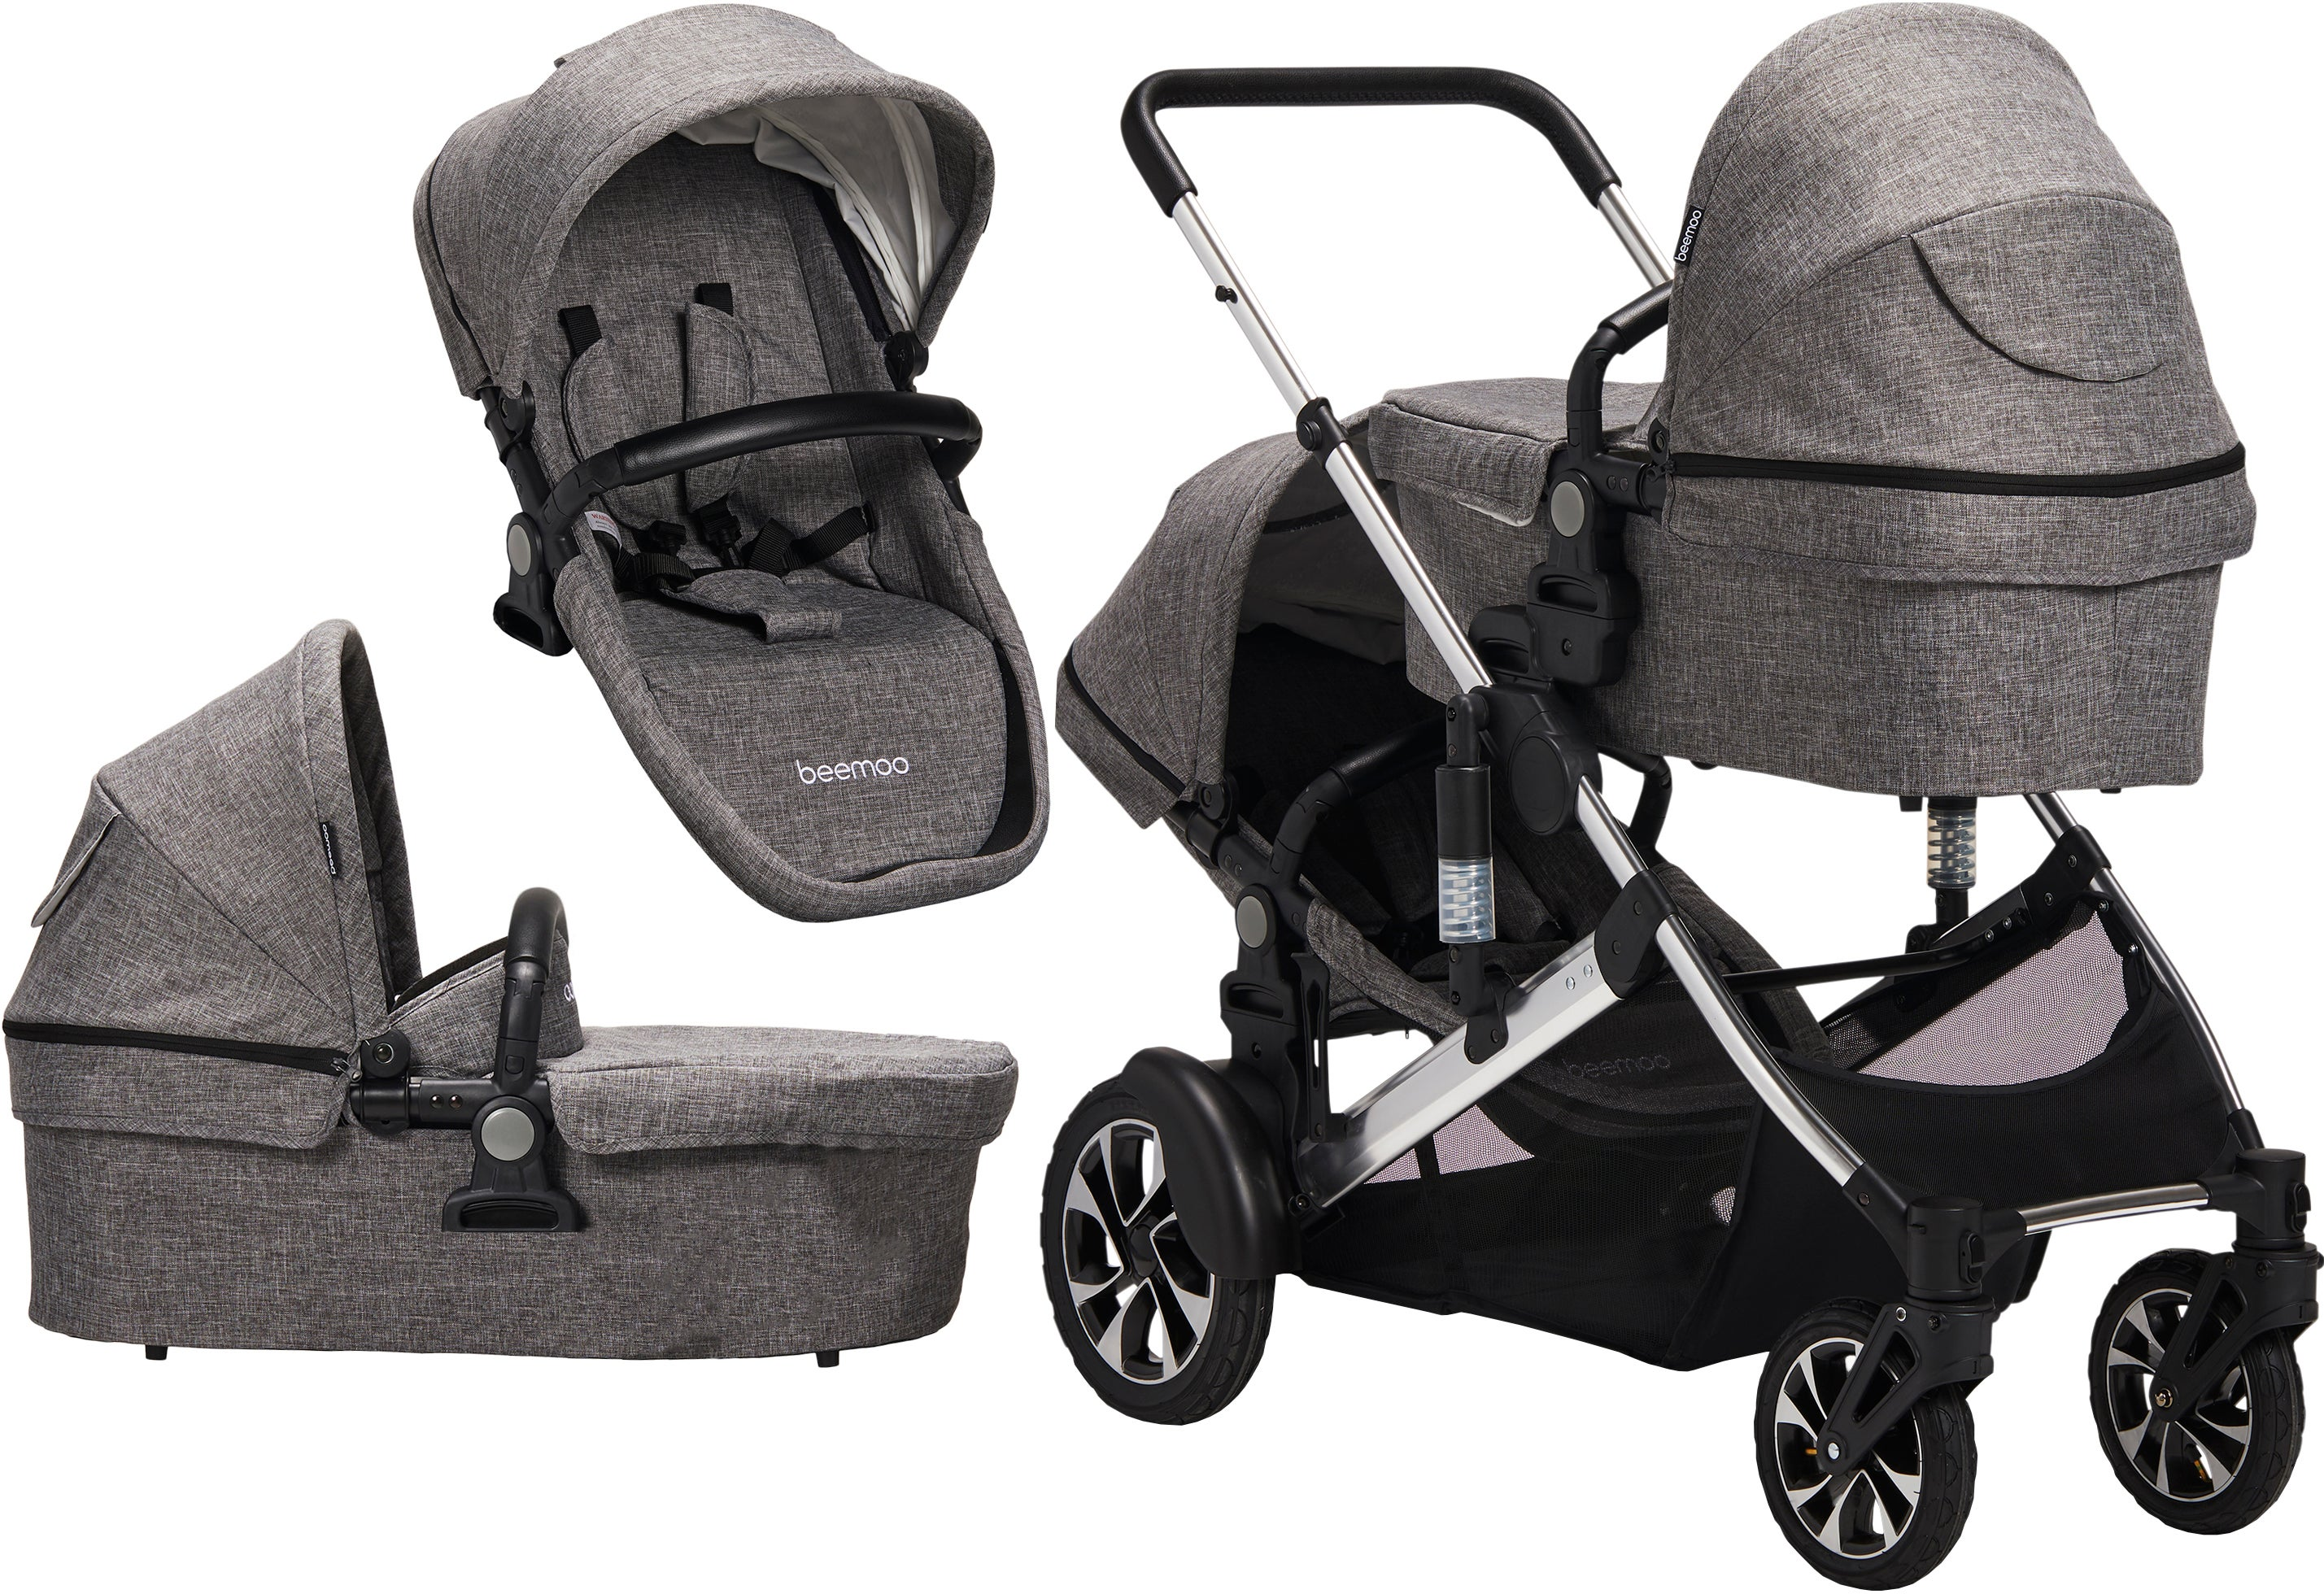 Beemoo Maxi Travel Lux II Tvillingvagn, Grey/Silver